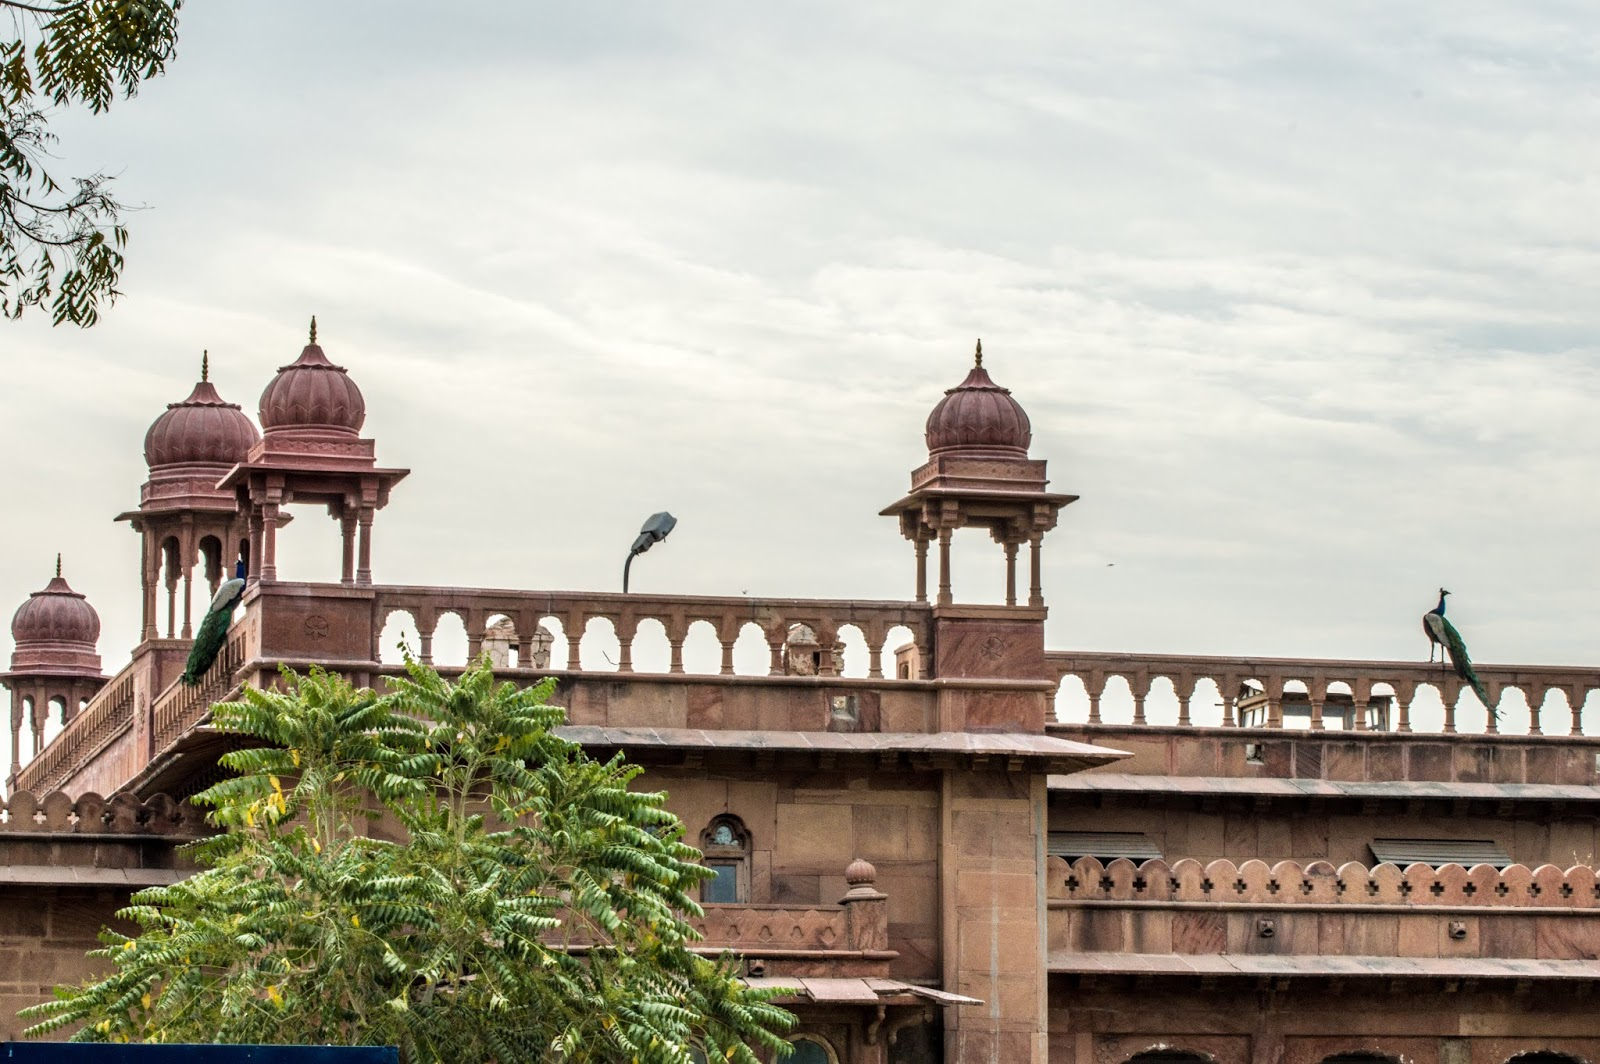 Peacocks on the Parapet  of the palace